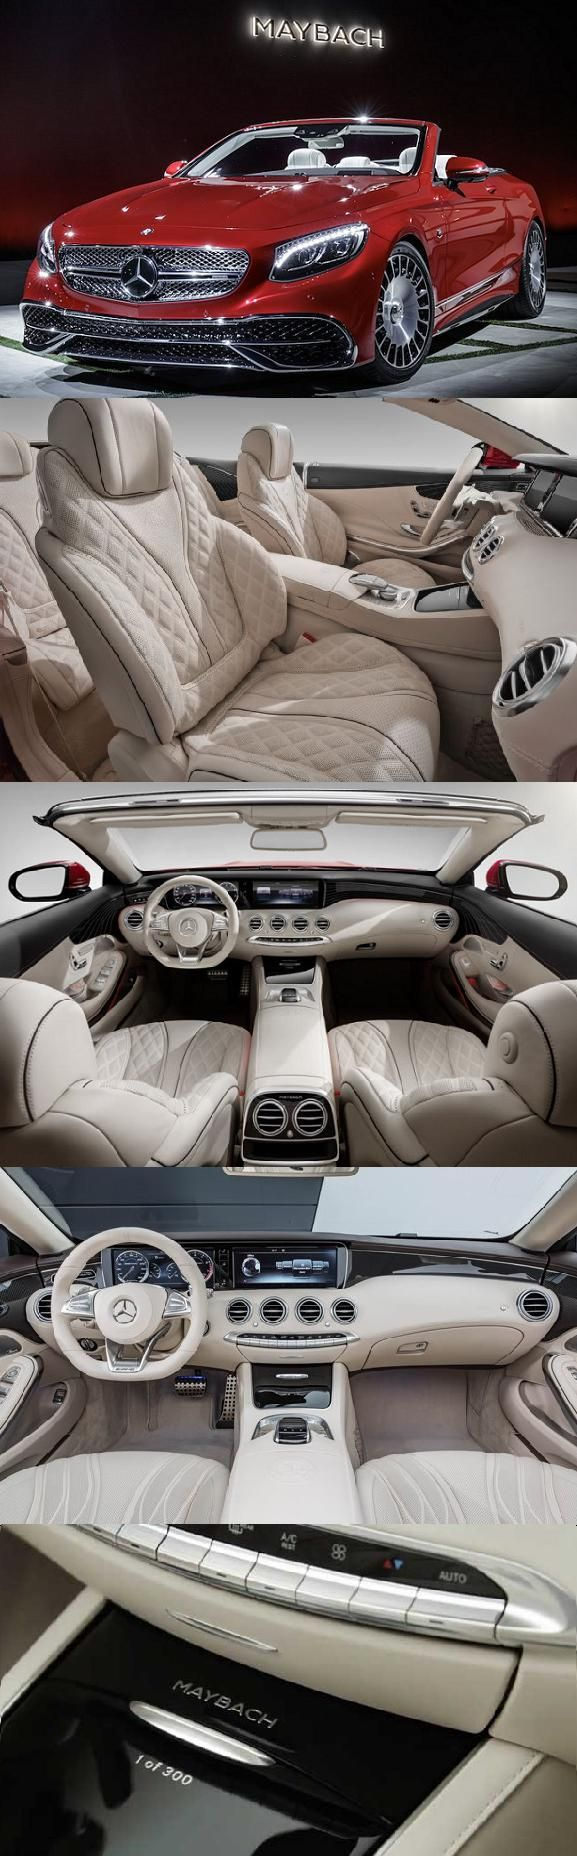 2017 Mercedes Maybach S650 with the price of $337000 is one of the most expensive cars. #mostexpensivecars